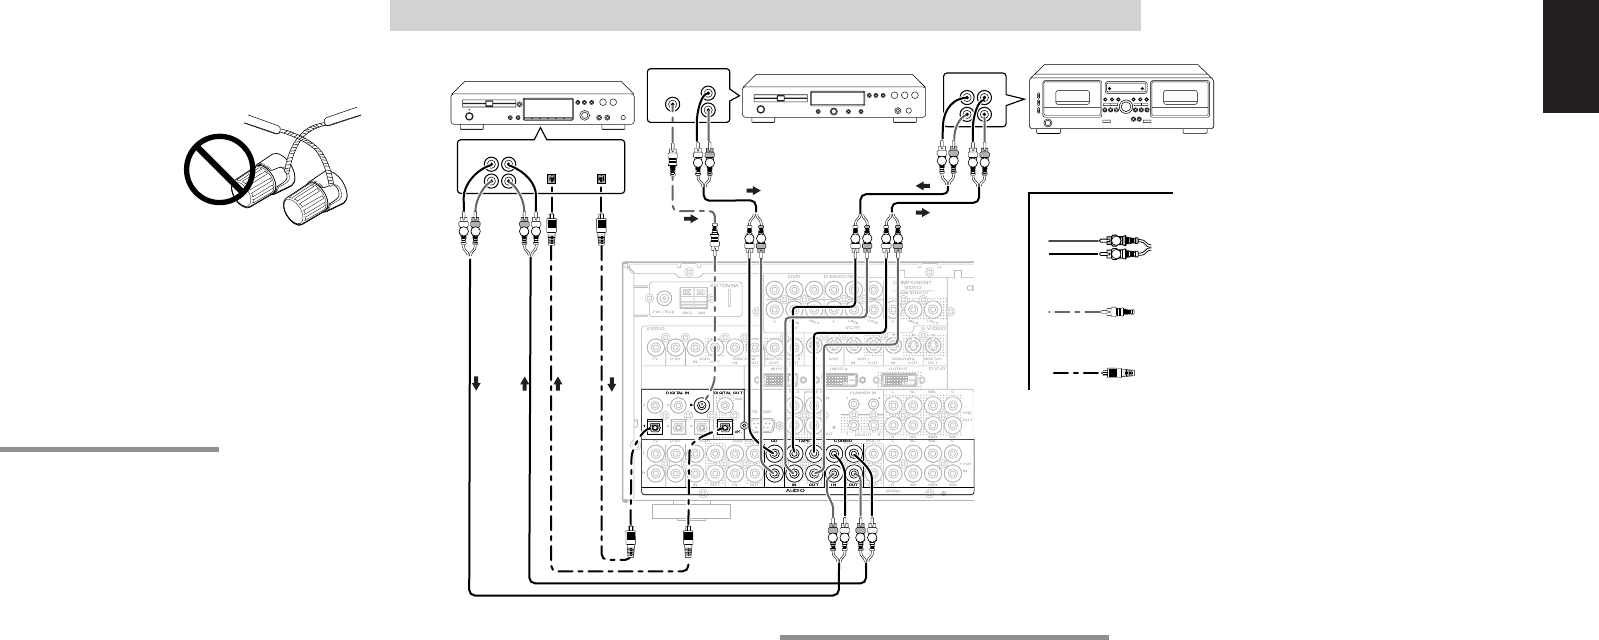 Page 17 of Marantz Stereo Receiver SR8500 User Guide